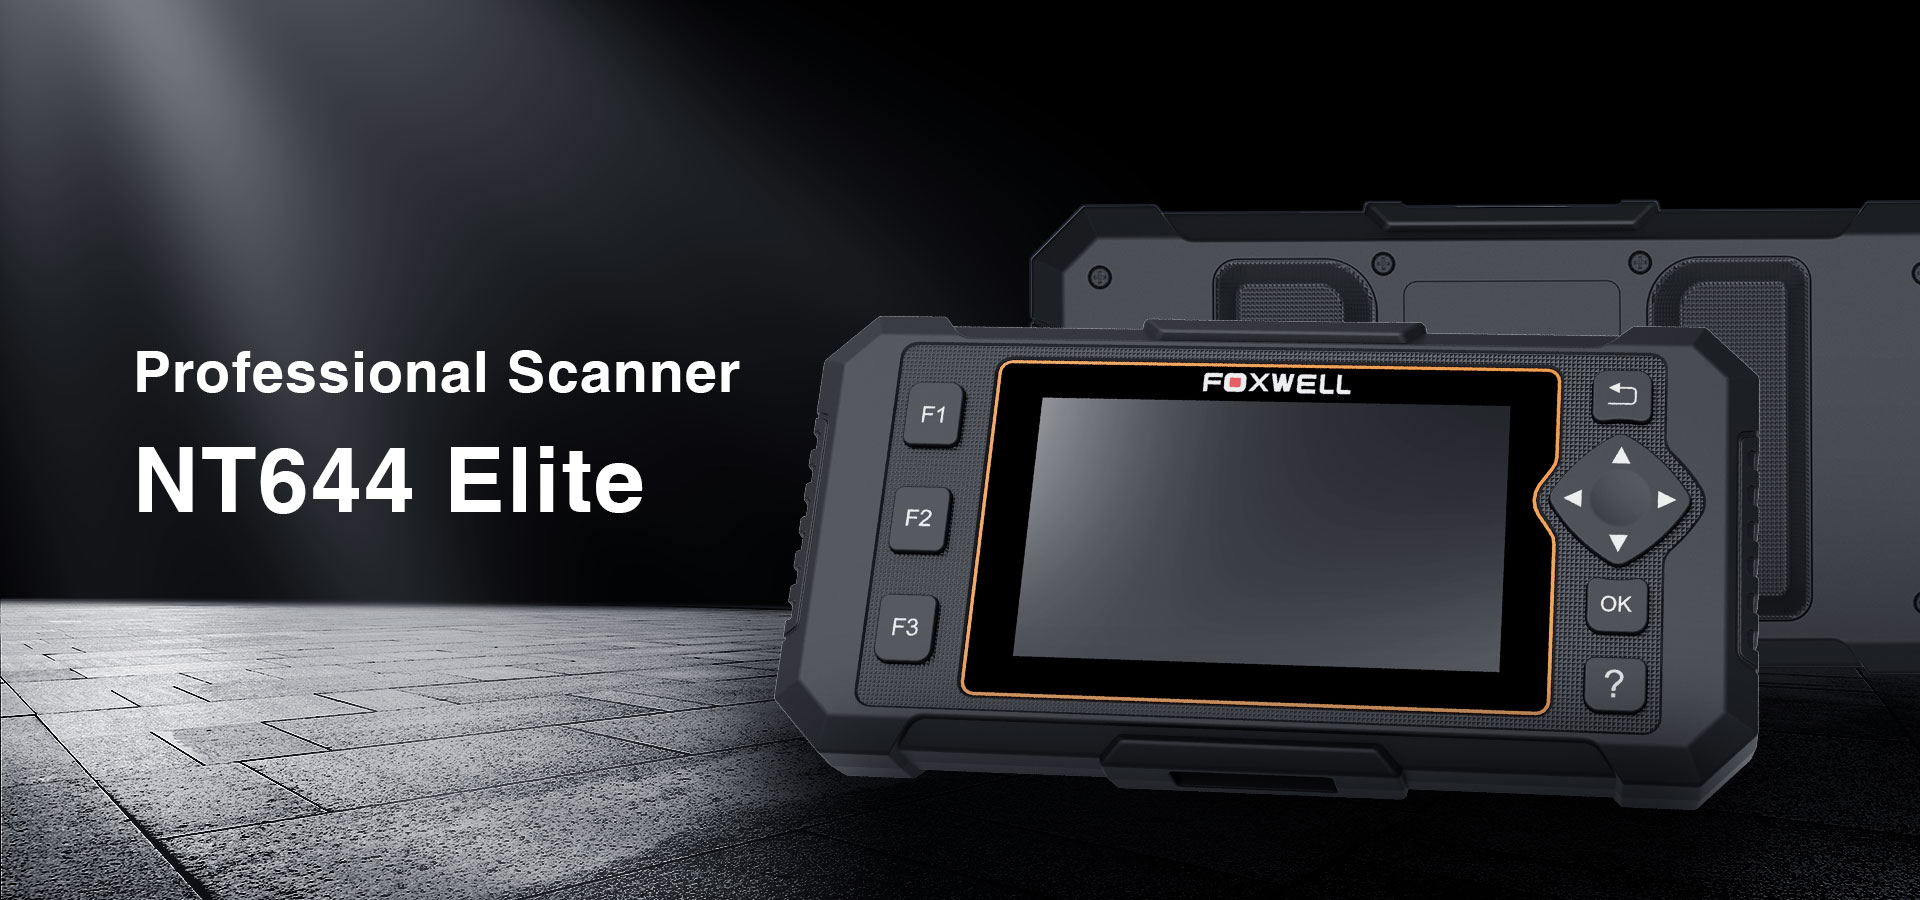 Foxwell Released A Professional Scanner NT644Elite